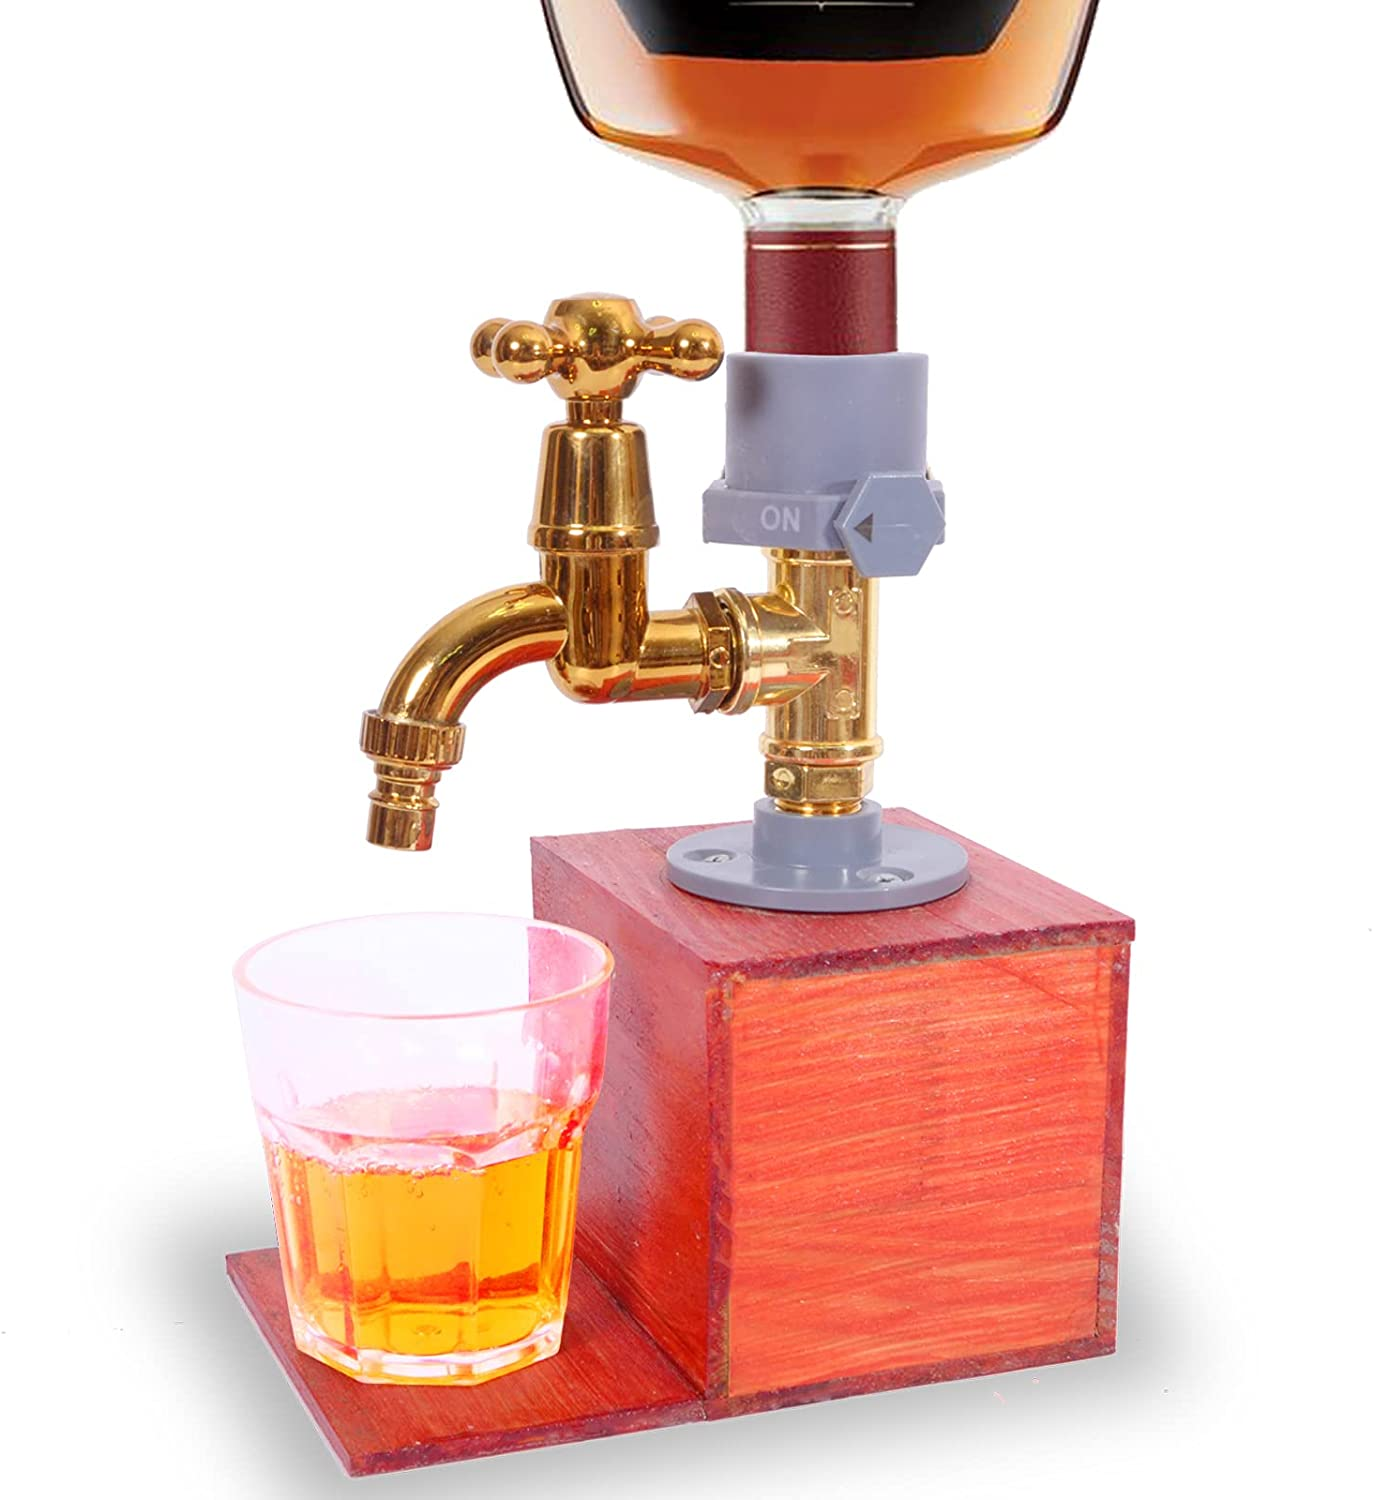 FYANER Whiskey wood Dispenser New color Liquor Fathers Max 85% OFF Day Alcohol